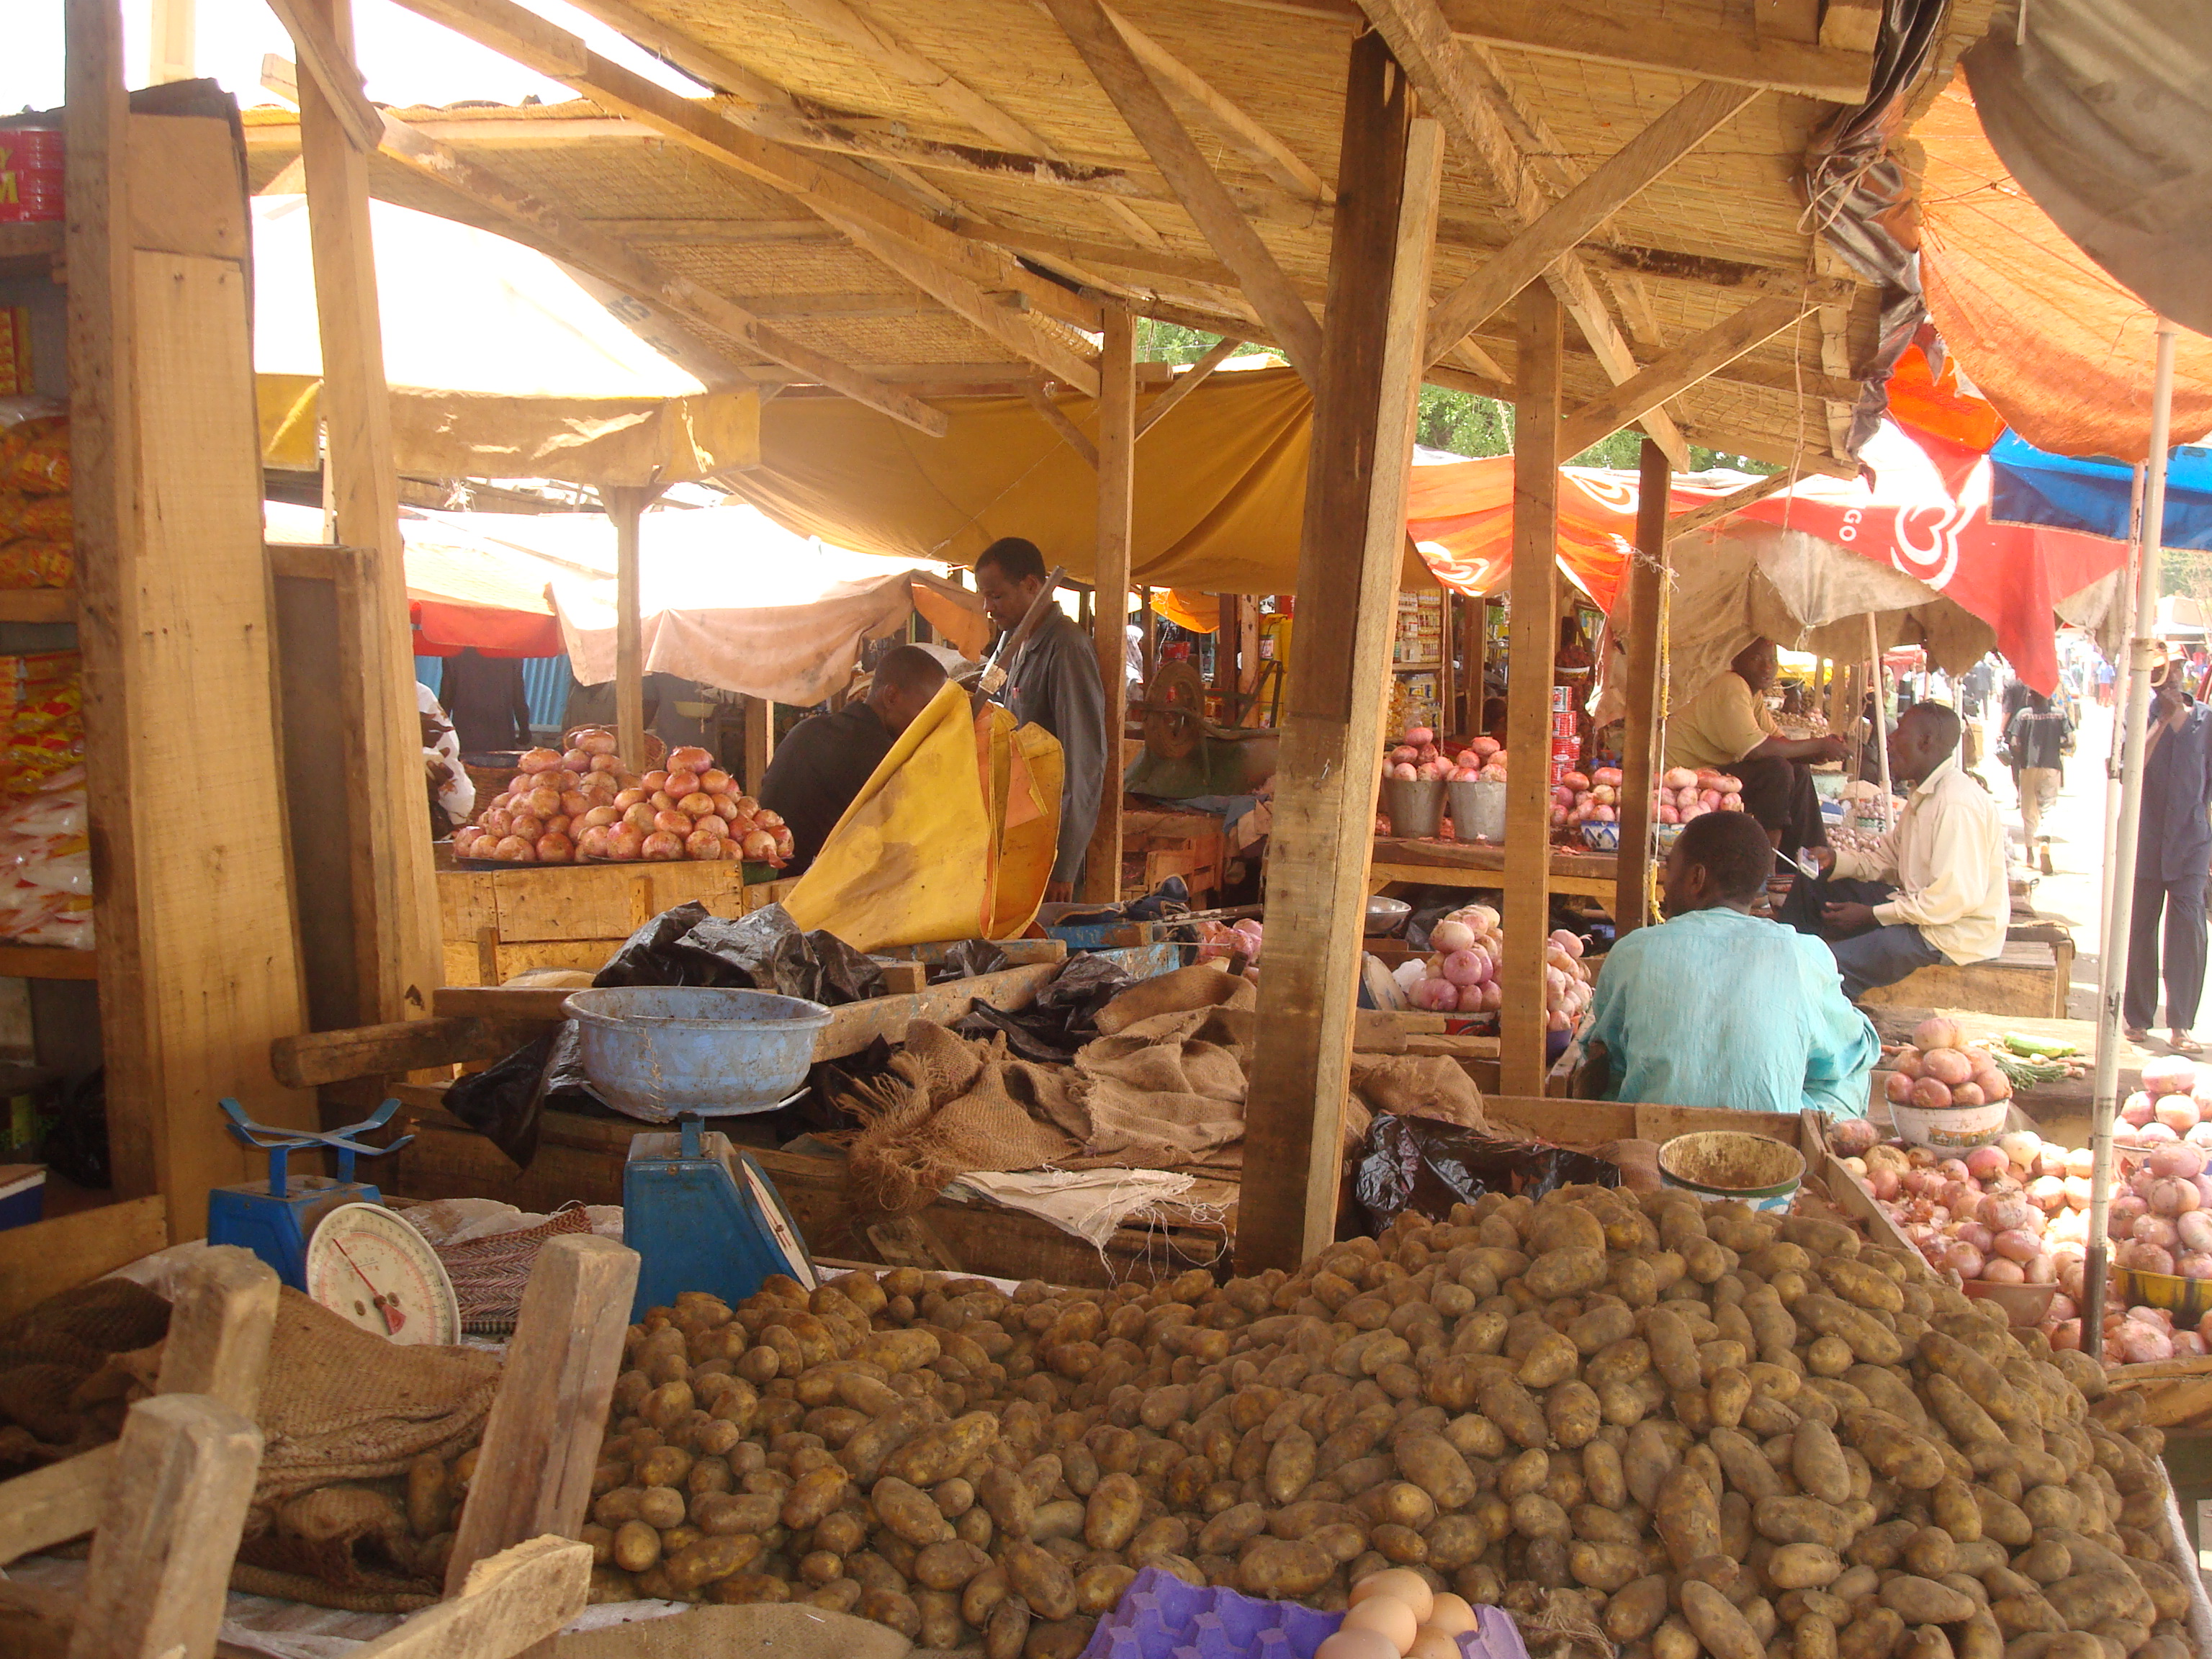 Less bustle at capital market stall